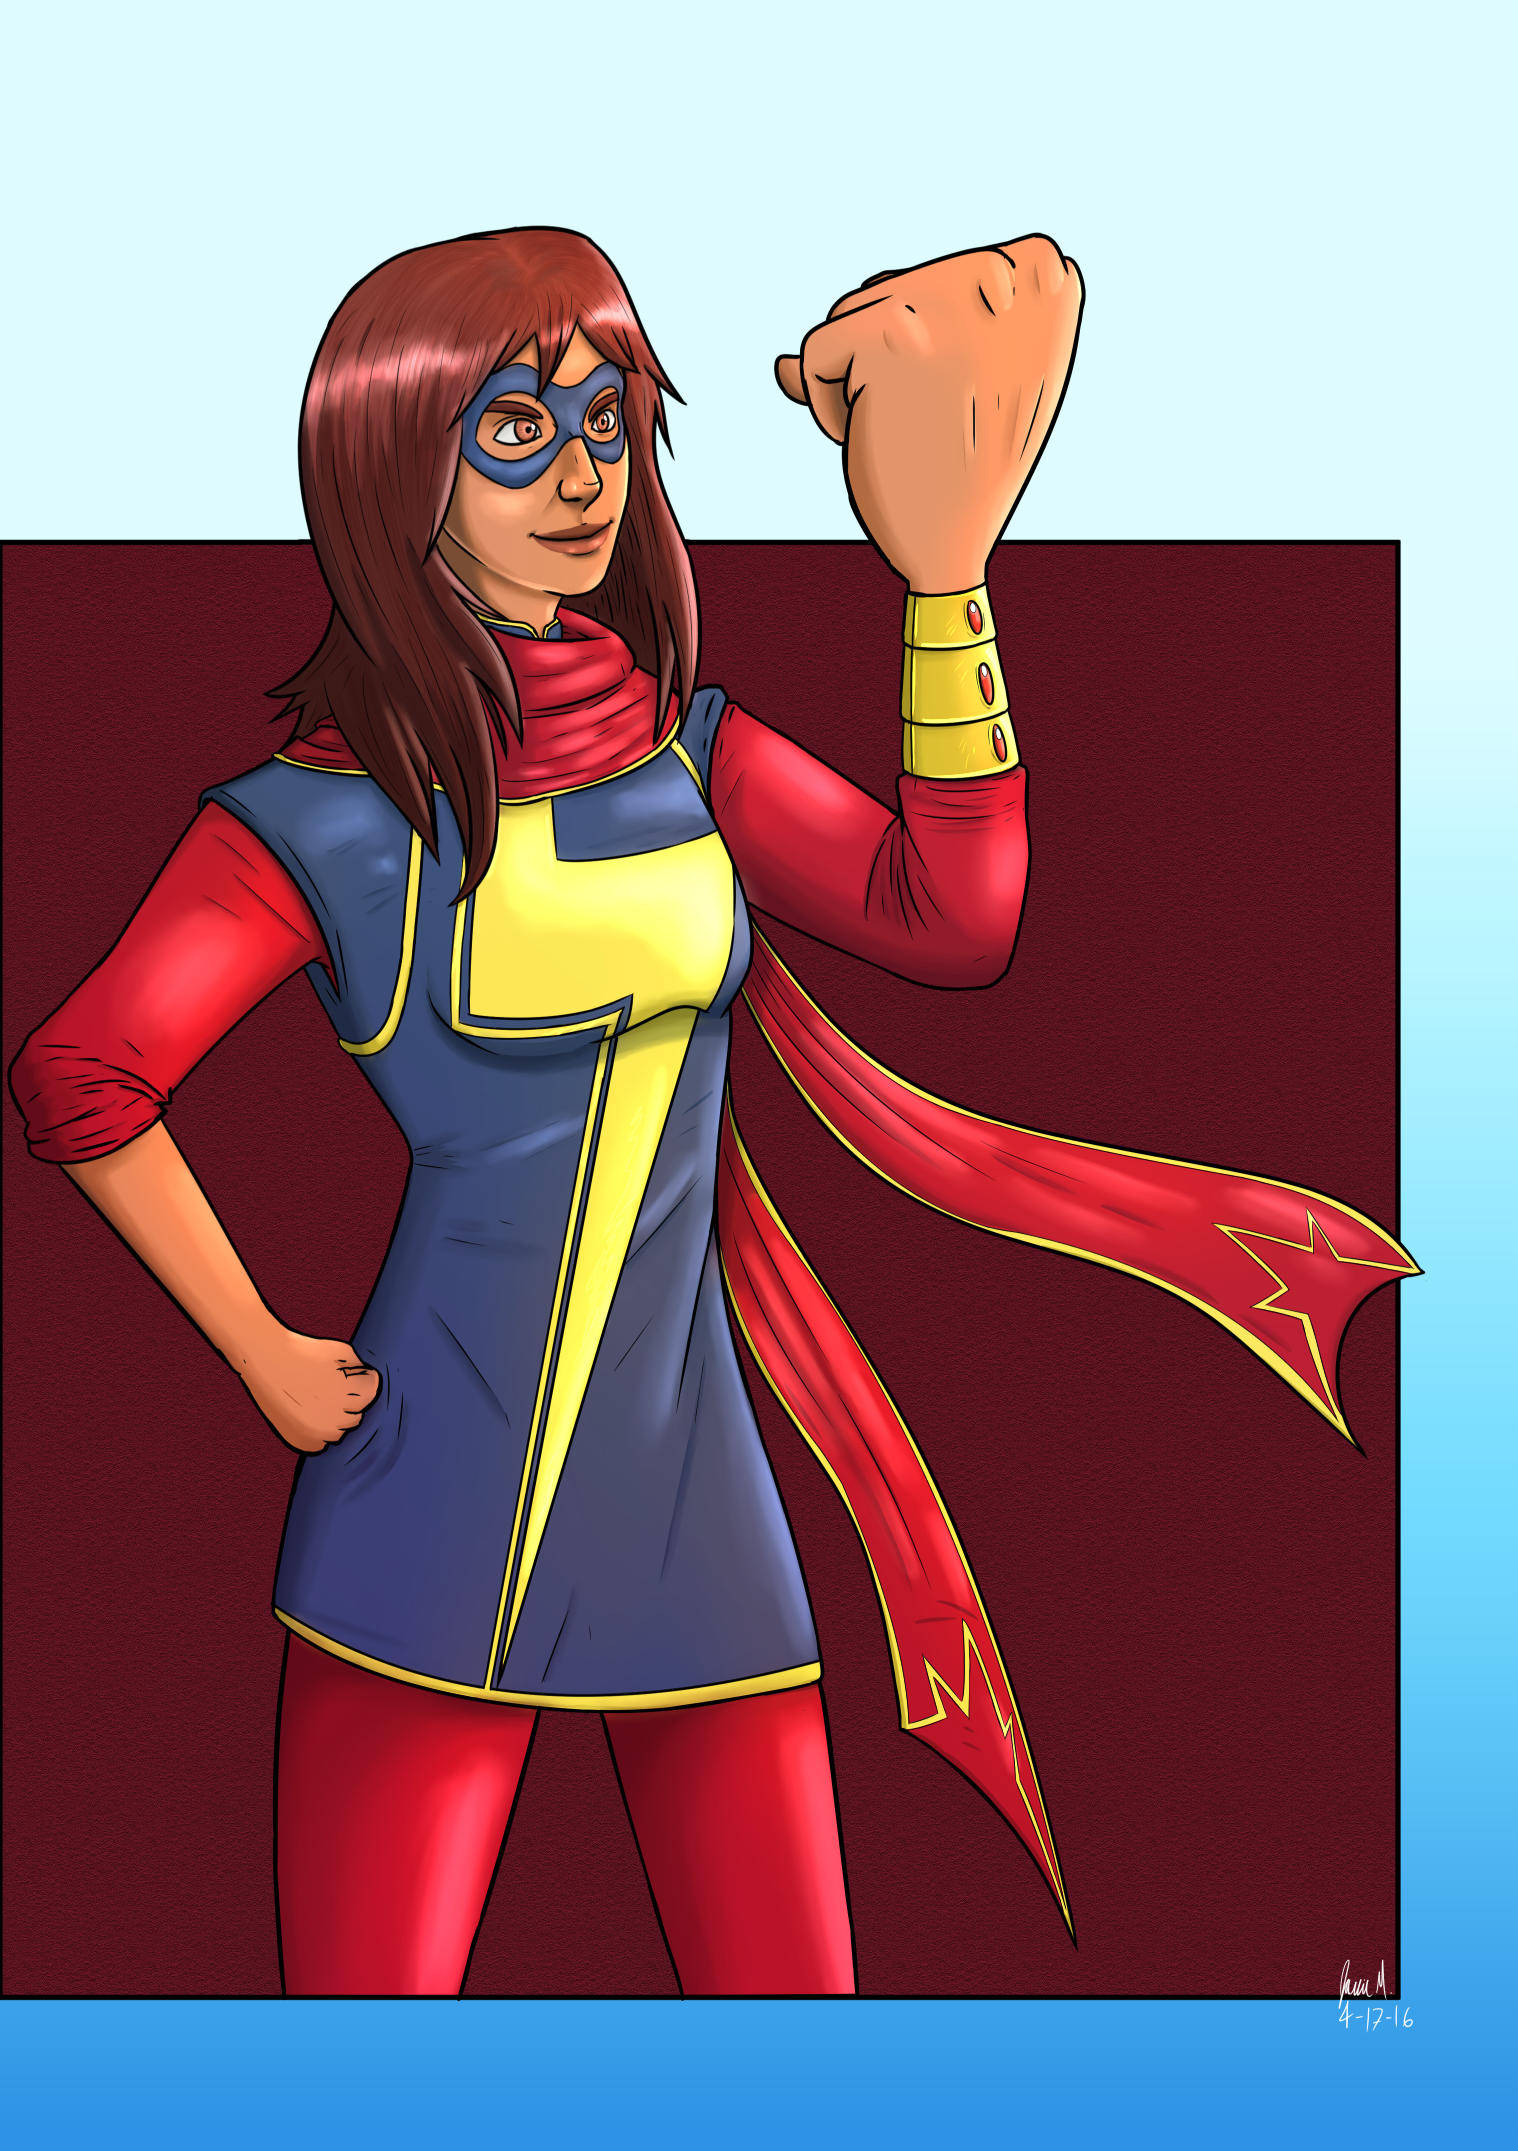 Ms Marvel is pretty swell